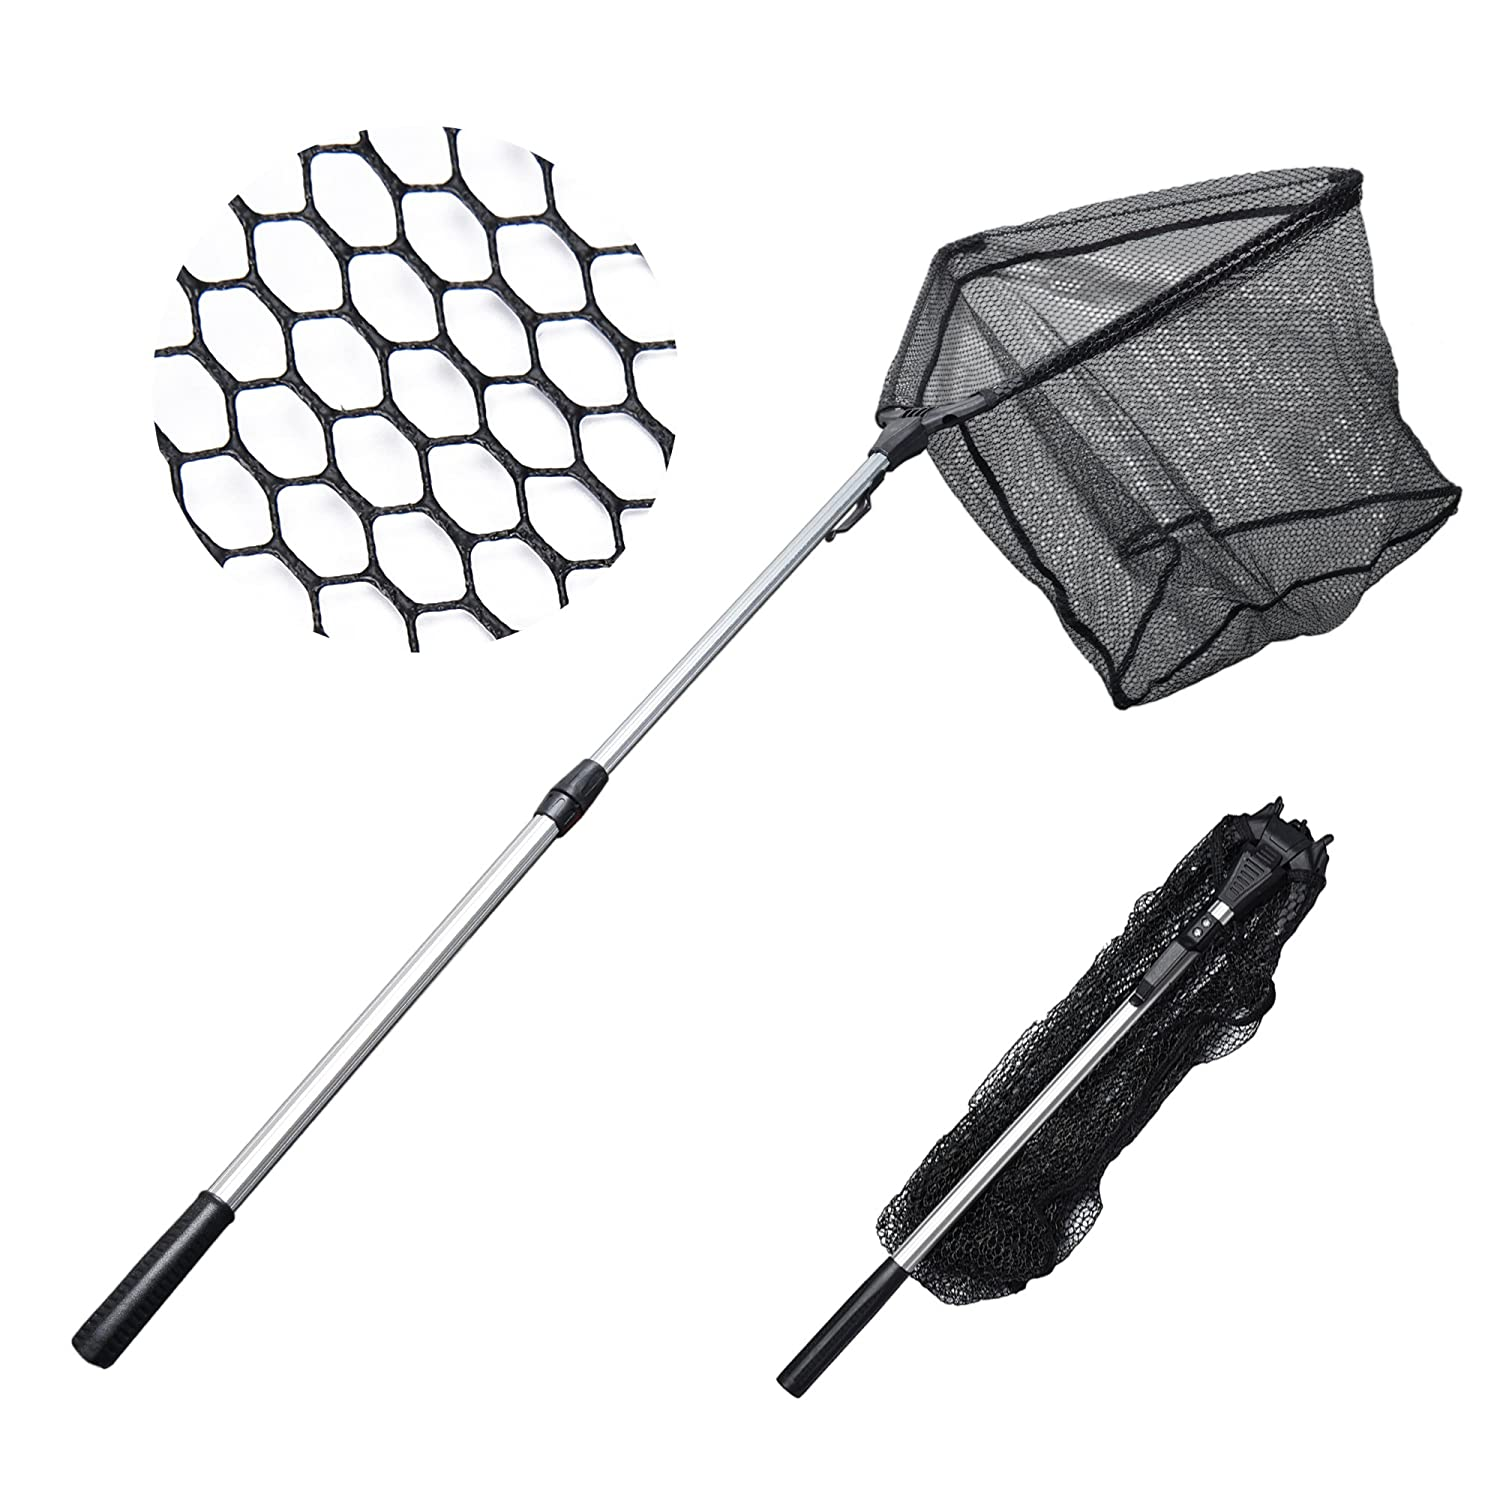 amazoncom madbite fishing net safe catch release fish landing net foldable telescoping durable strong yet light weight sports outdoors